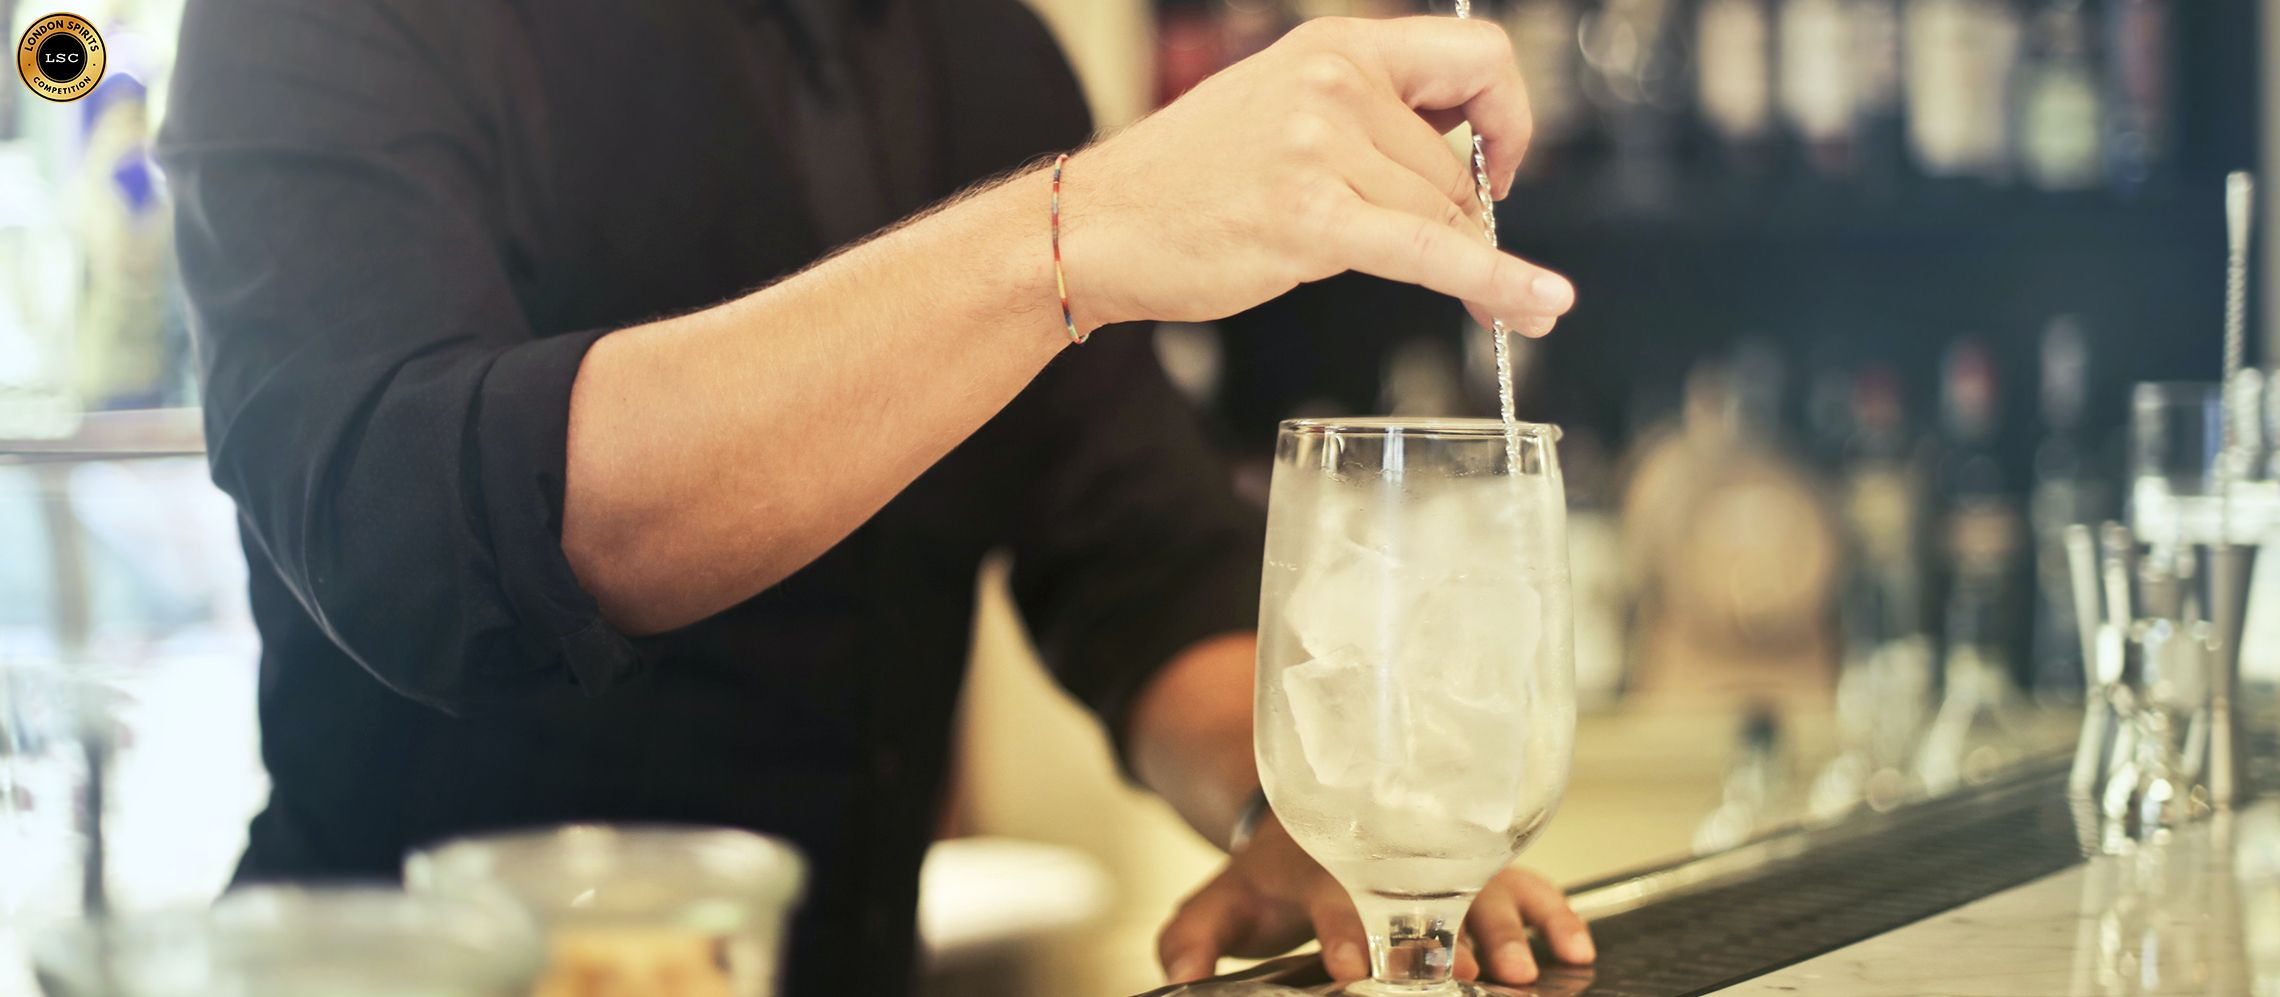 Photo for: The World's Most Famous Mixologists To Check Out: The Ultimate Top 10